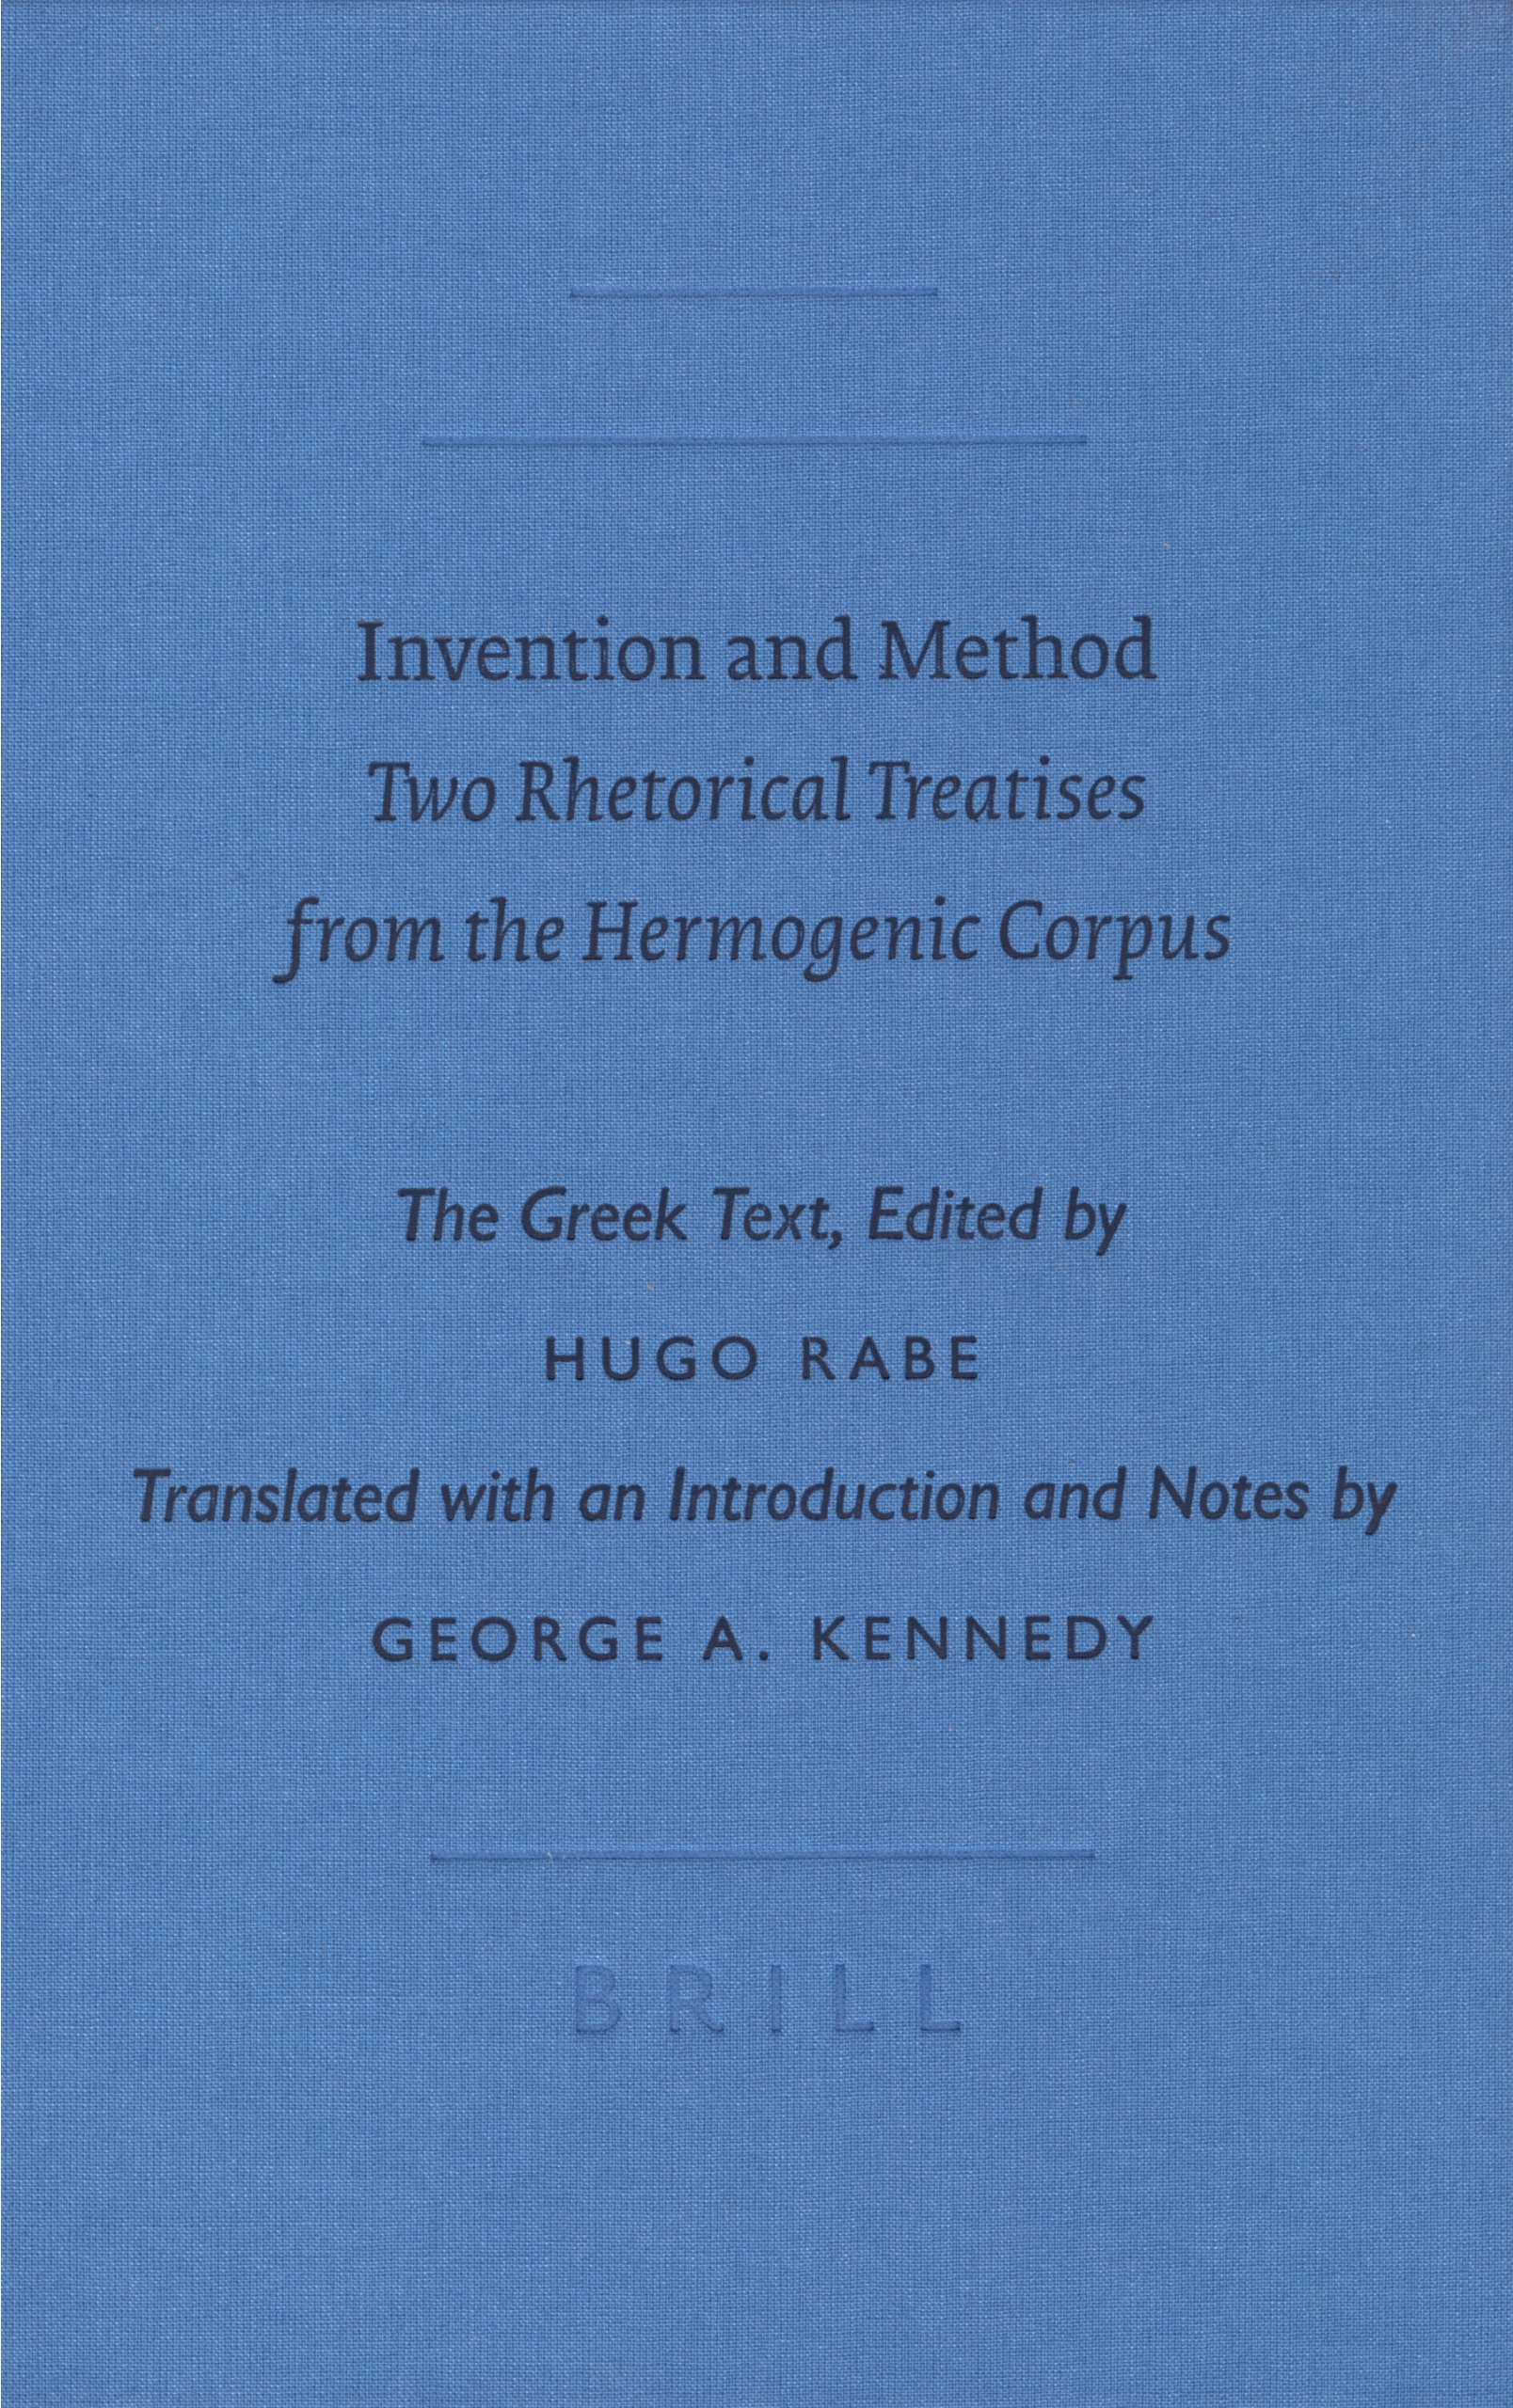 Invention and Method: Two Rhetorical Treatises from the Hermogenic Corpus (Sbl - Writings from the Greco-Roman World) PDF